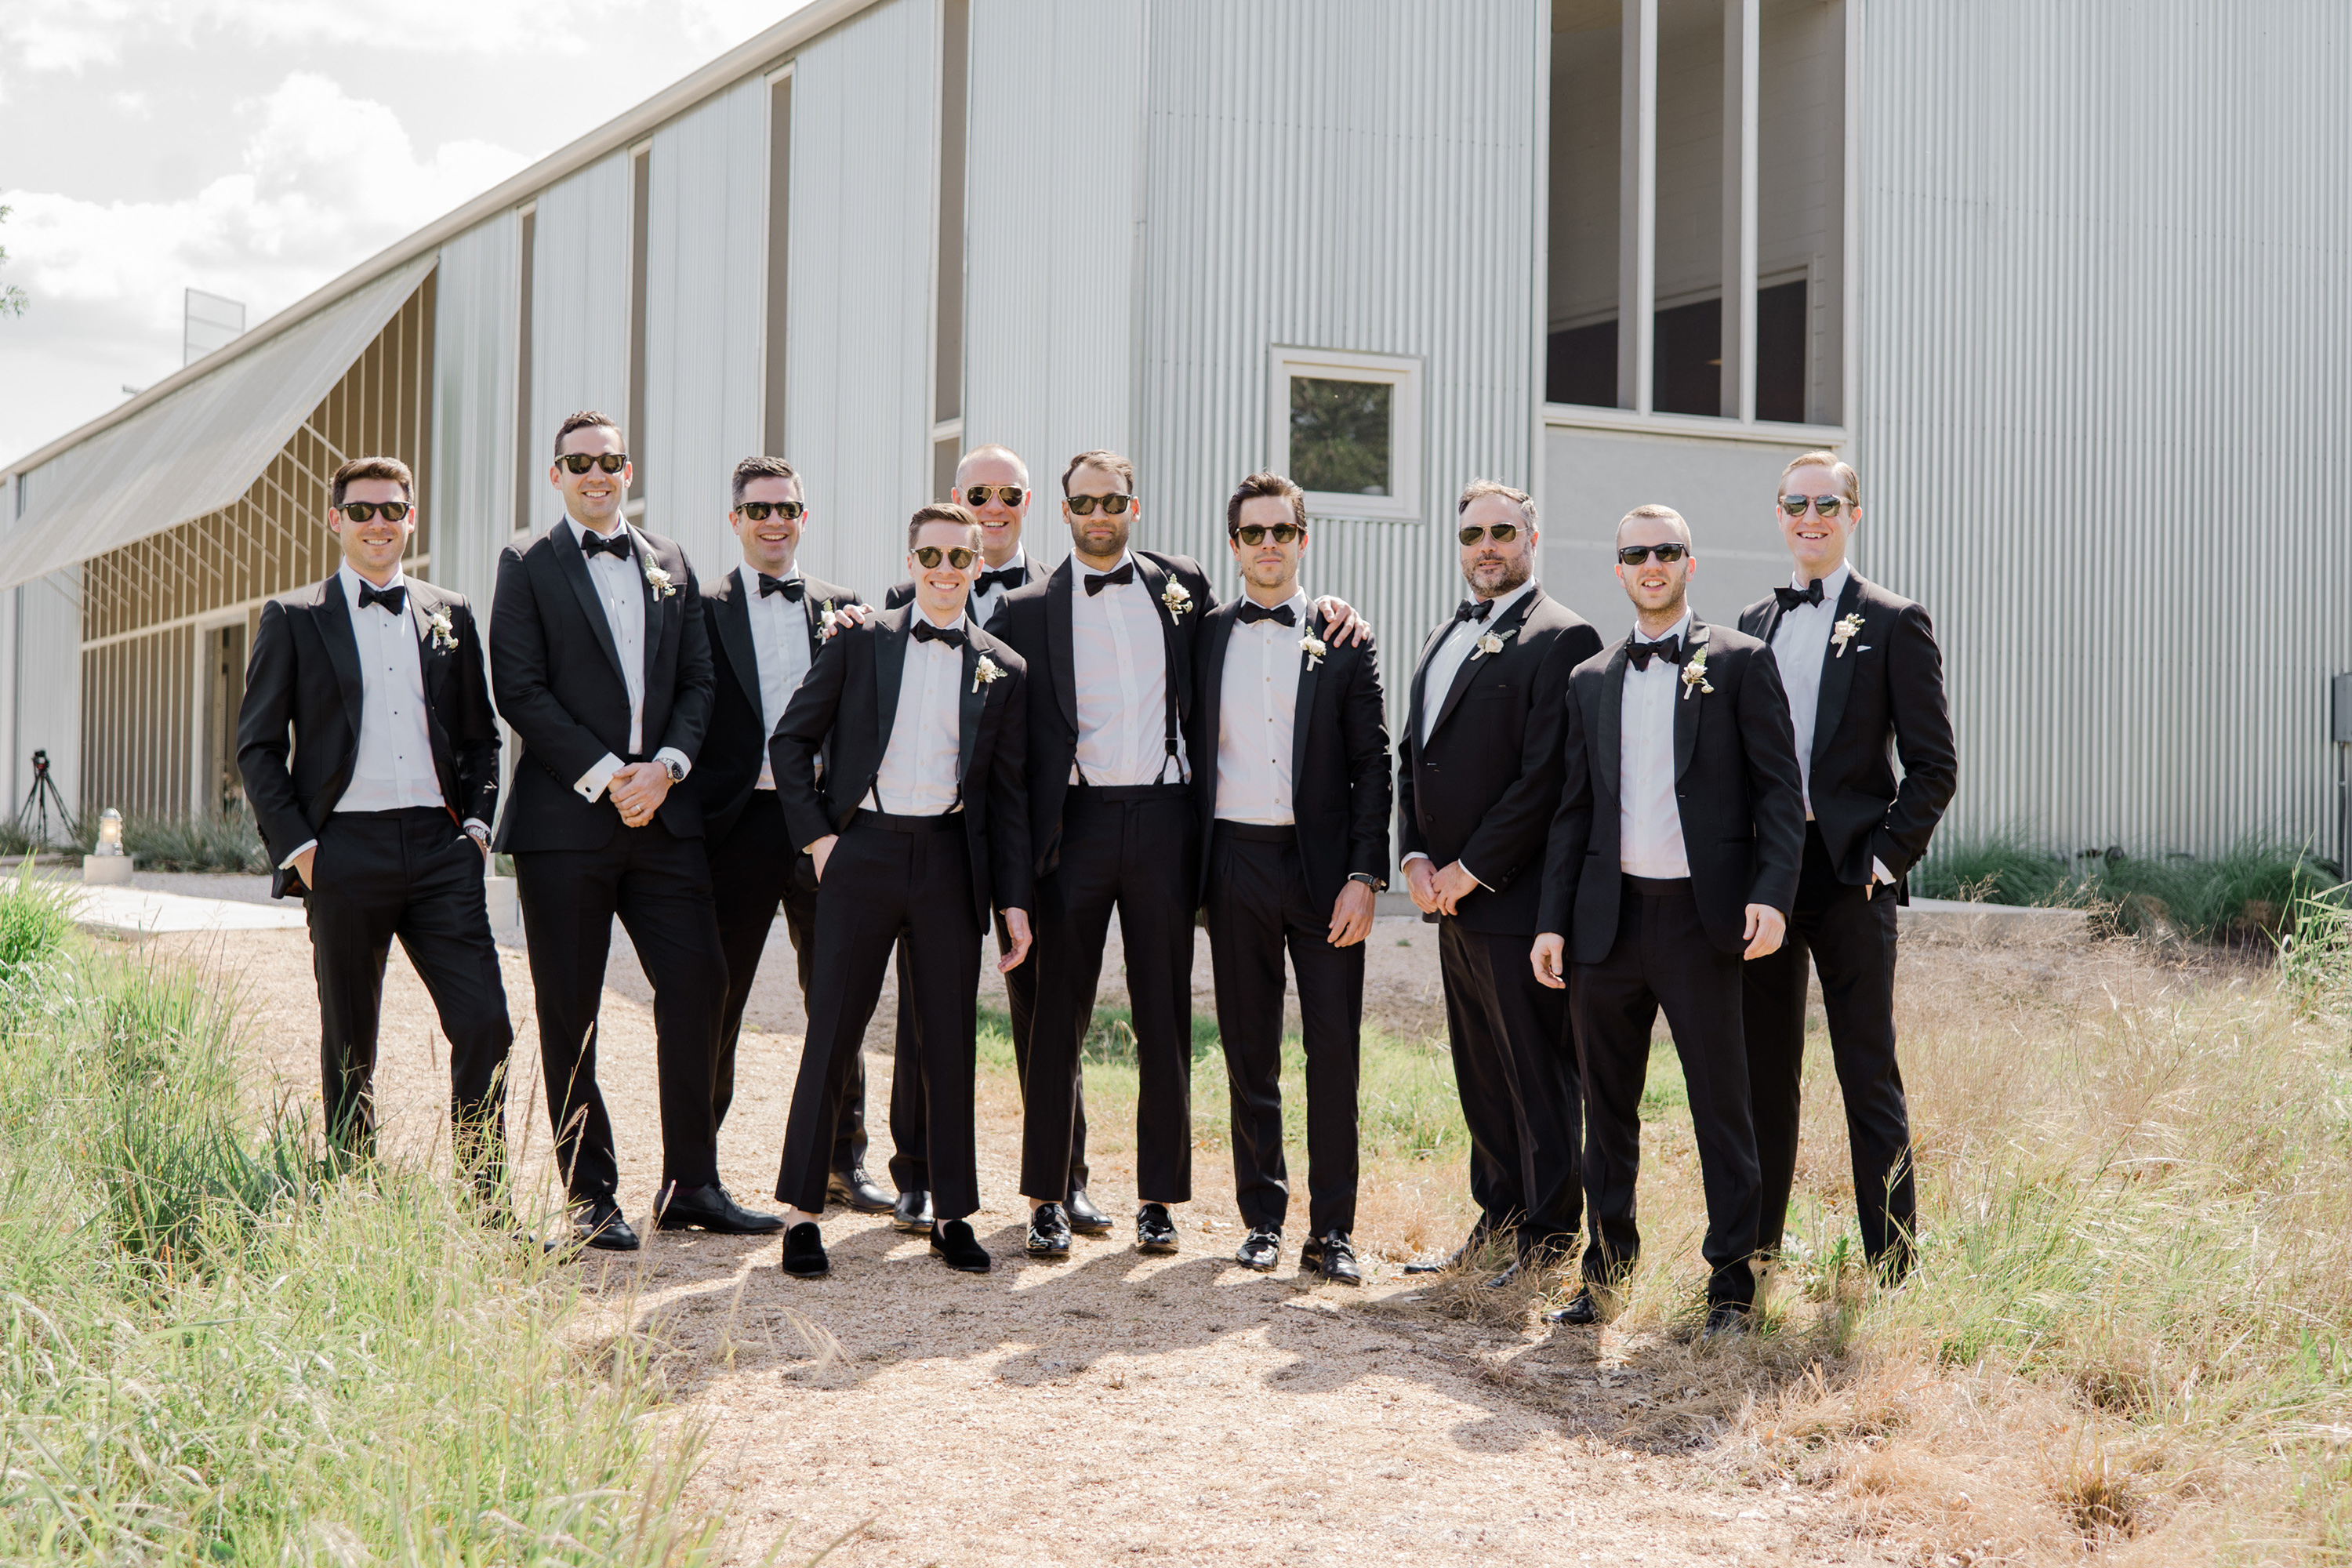 brittany peter wedding groomsmen